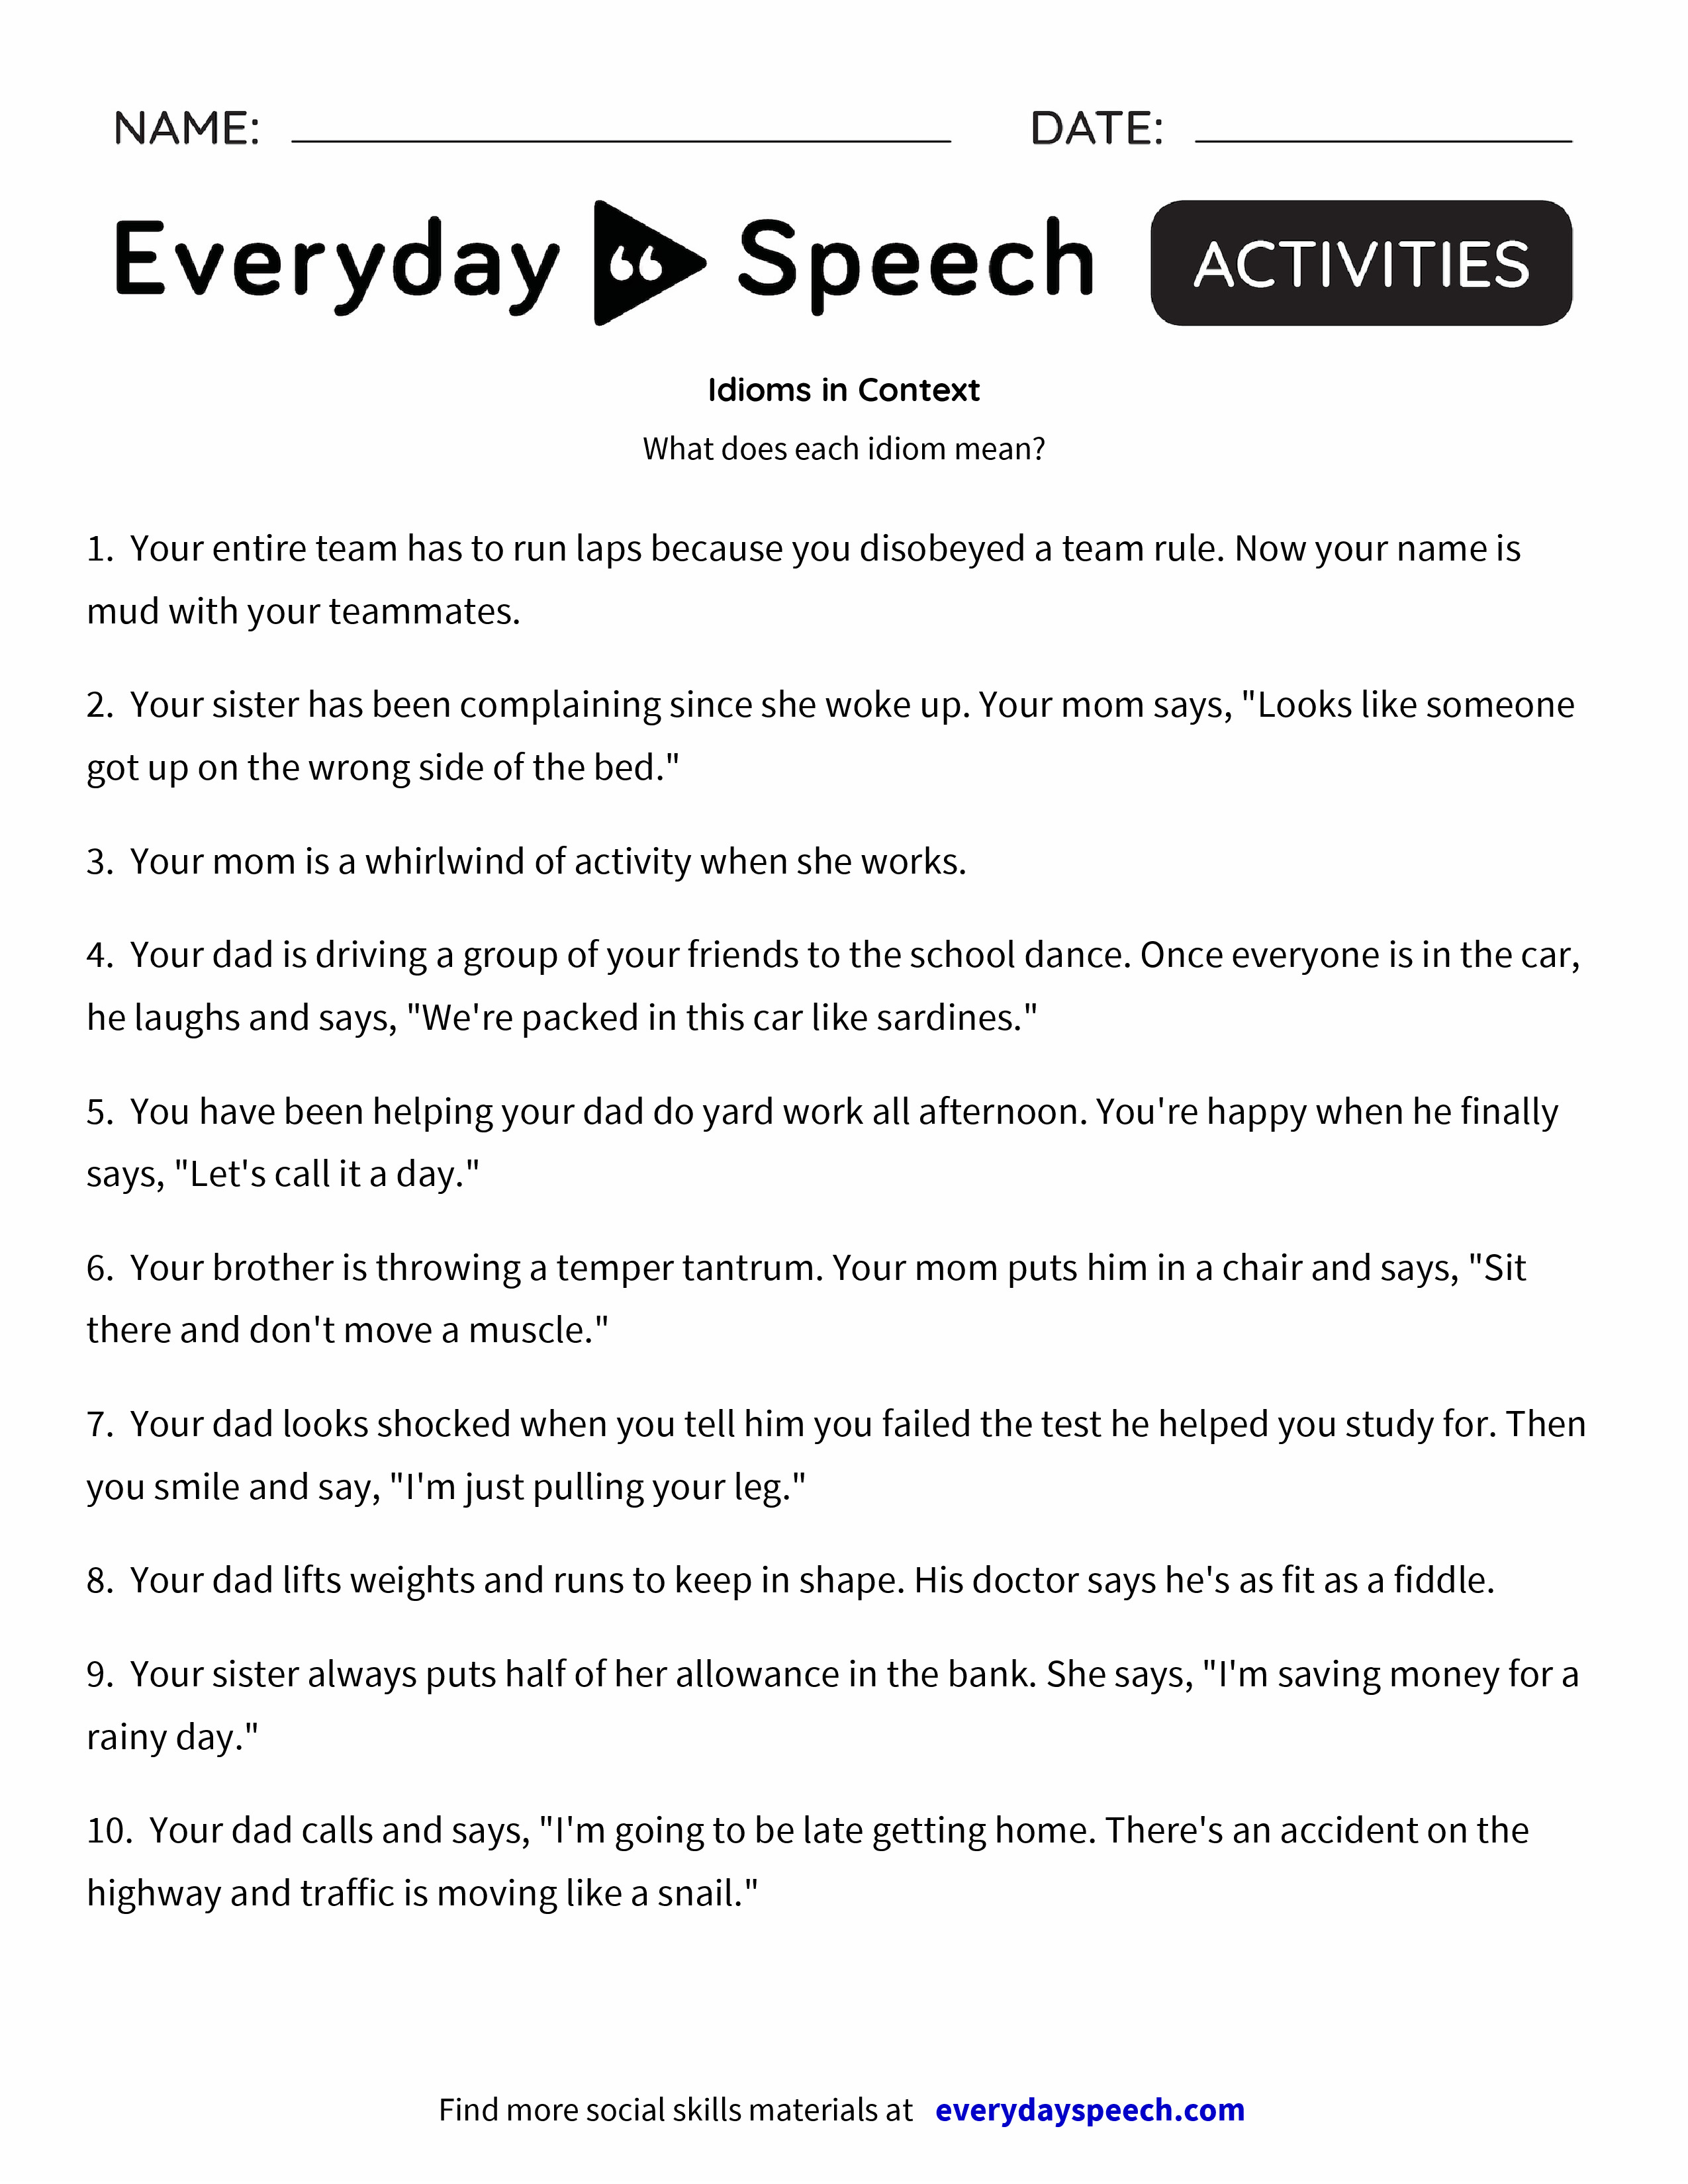 Worksheets Idiom Worksheets idioms in context everyday speech preview